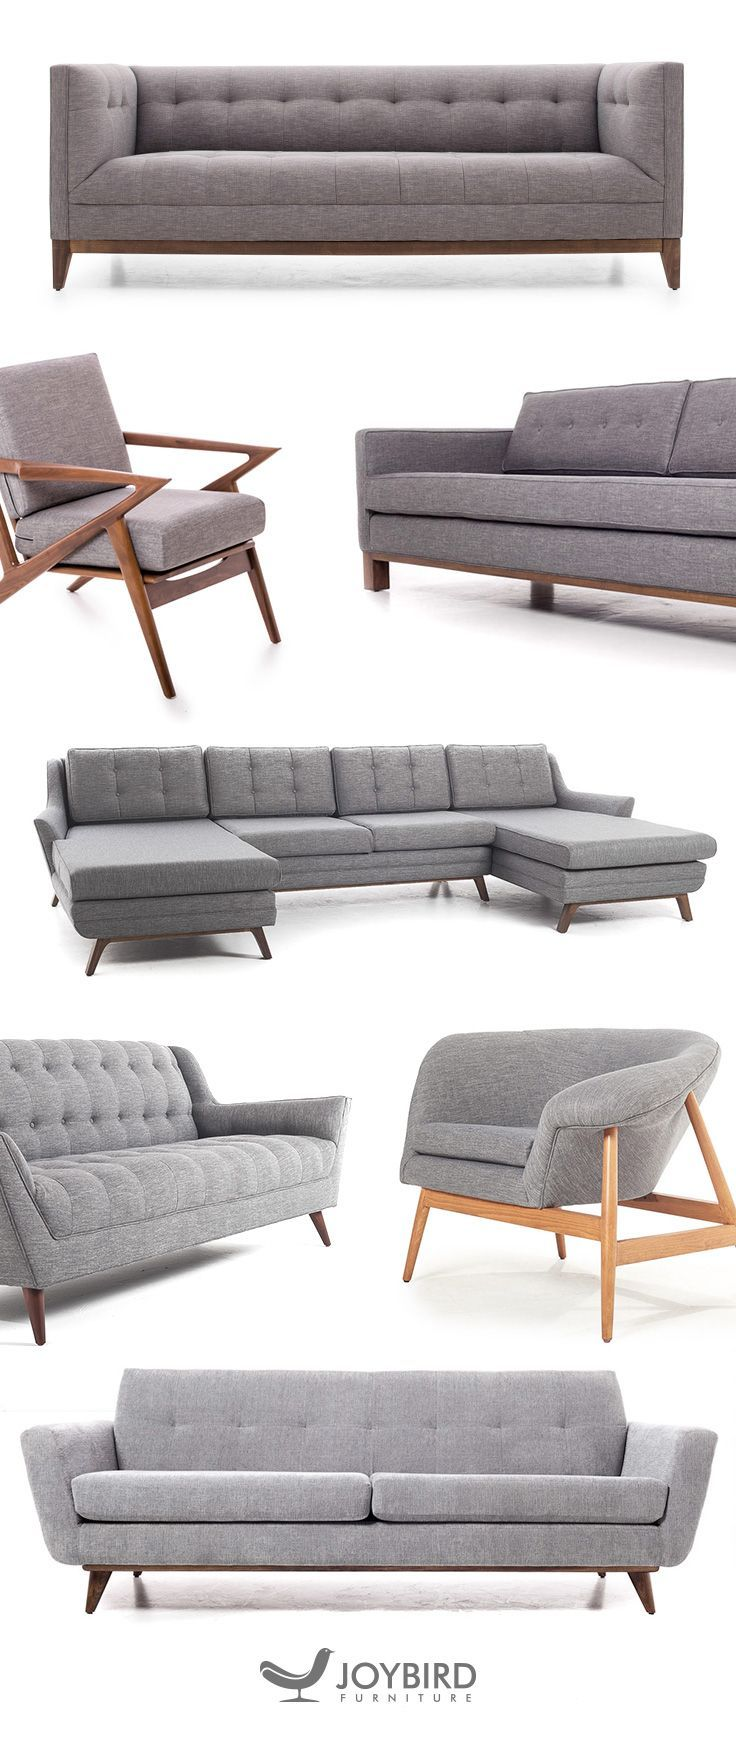 Get premium quality furniture made just for you with Joybird. With limitless options including size, fabrics and wood options, each and every piece is one-of-a-kind just the way you designed it. Find the most popular Mid-Century Modern pieces right at you https://emfurn.com/collections/industrial-chic